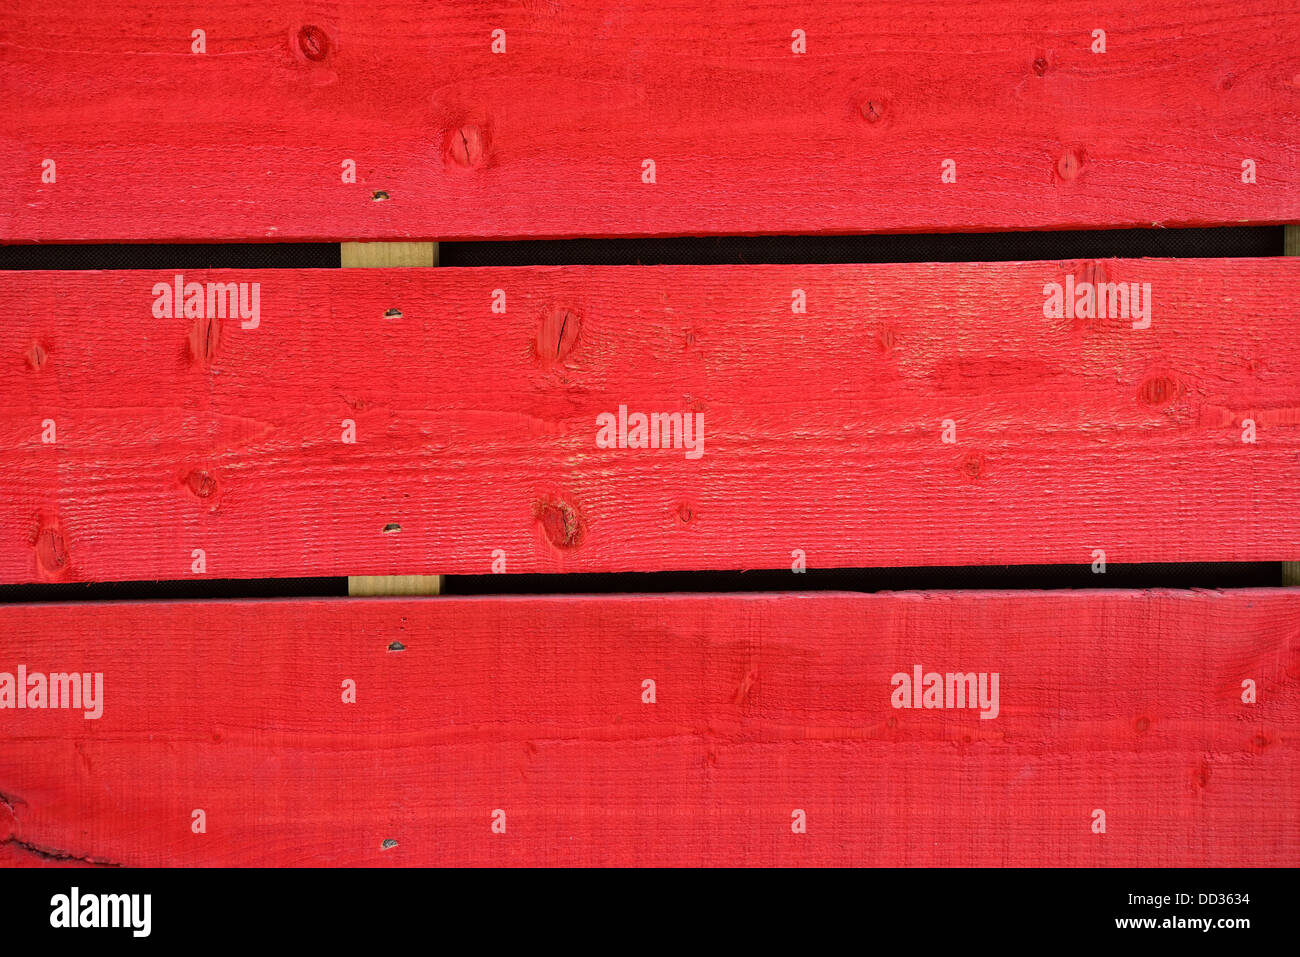 Planks of wood coloured in red - Stock Image